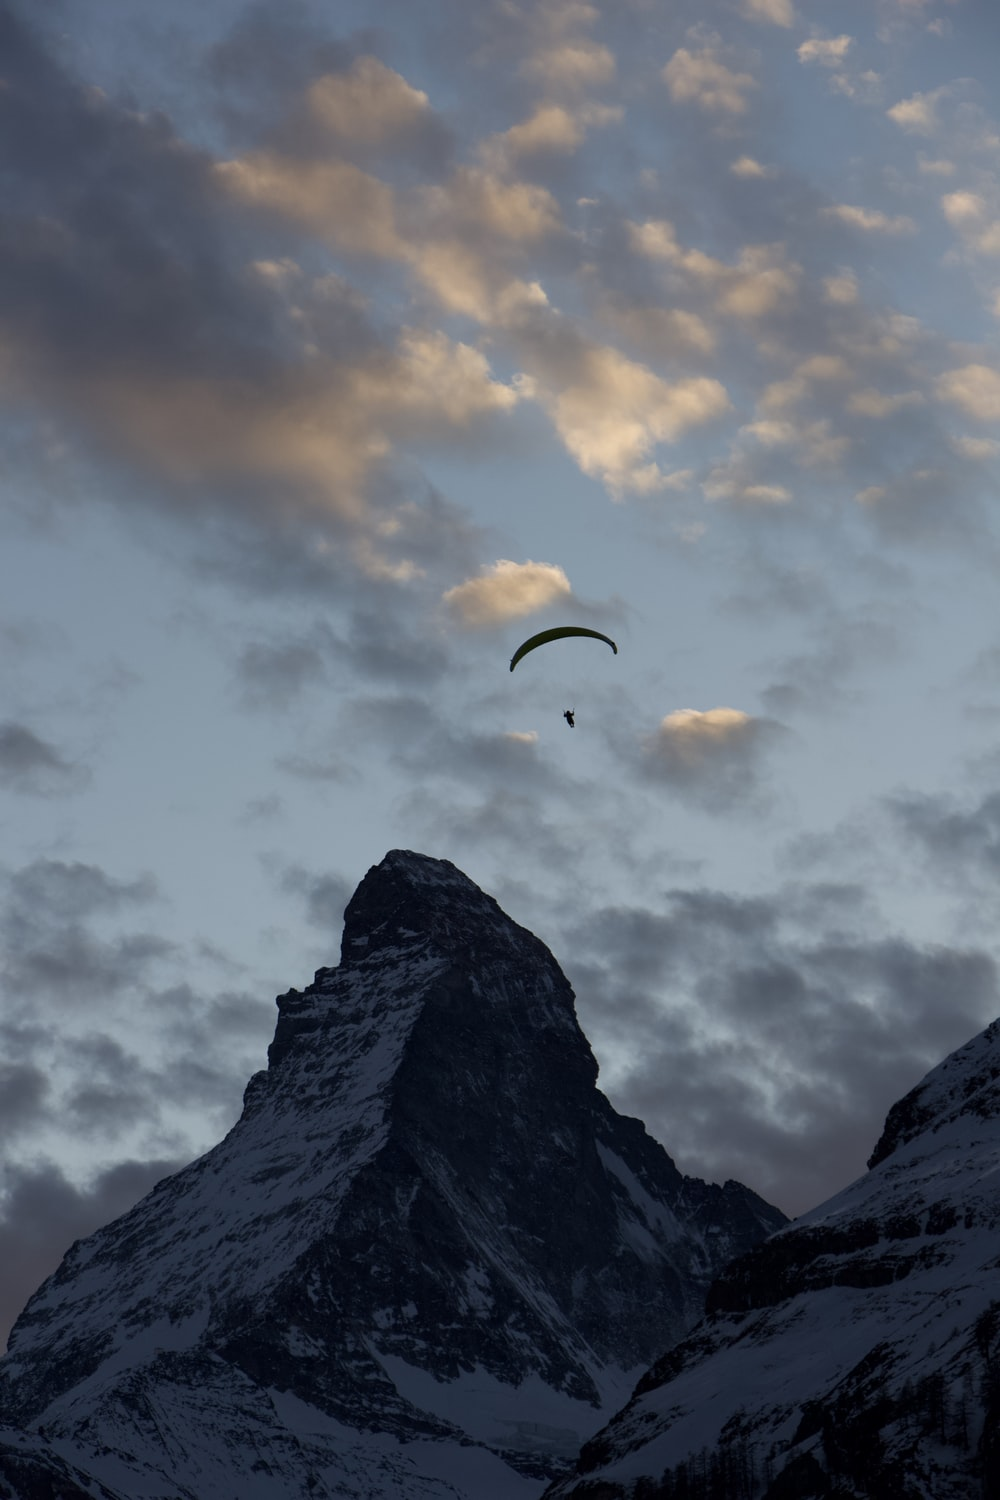 person in parachute over rocky mountain during daytime